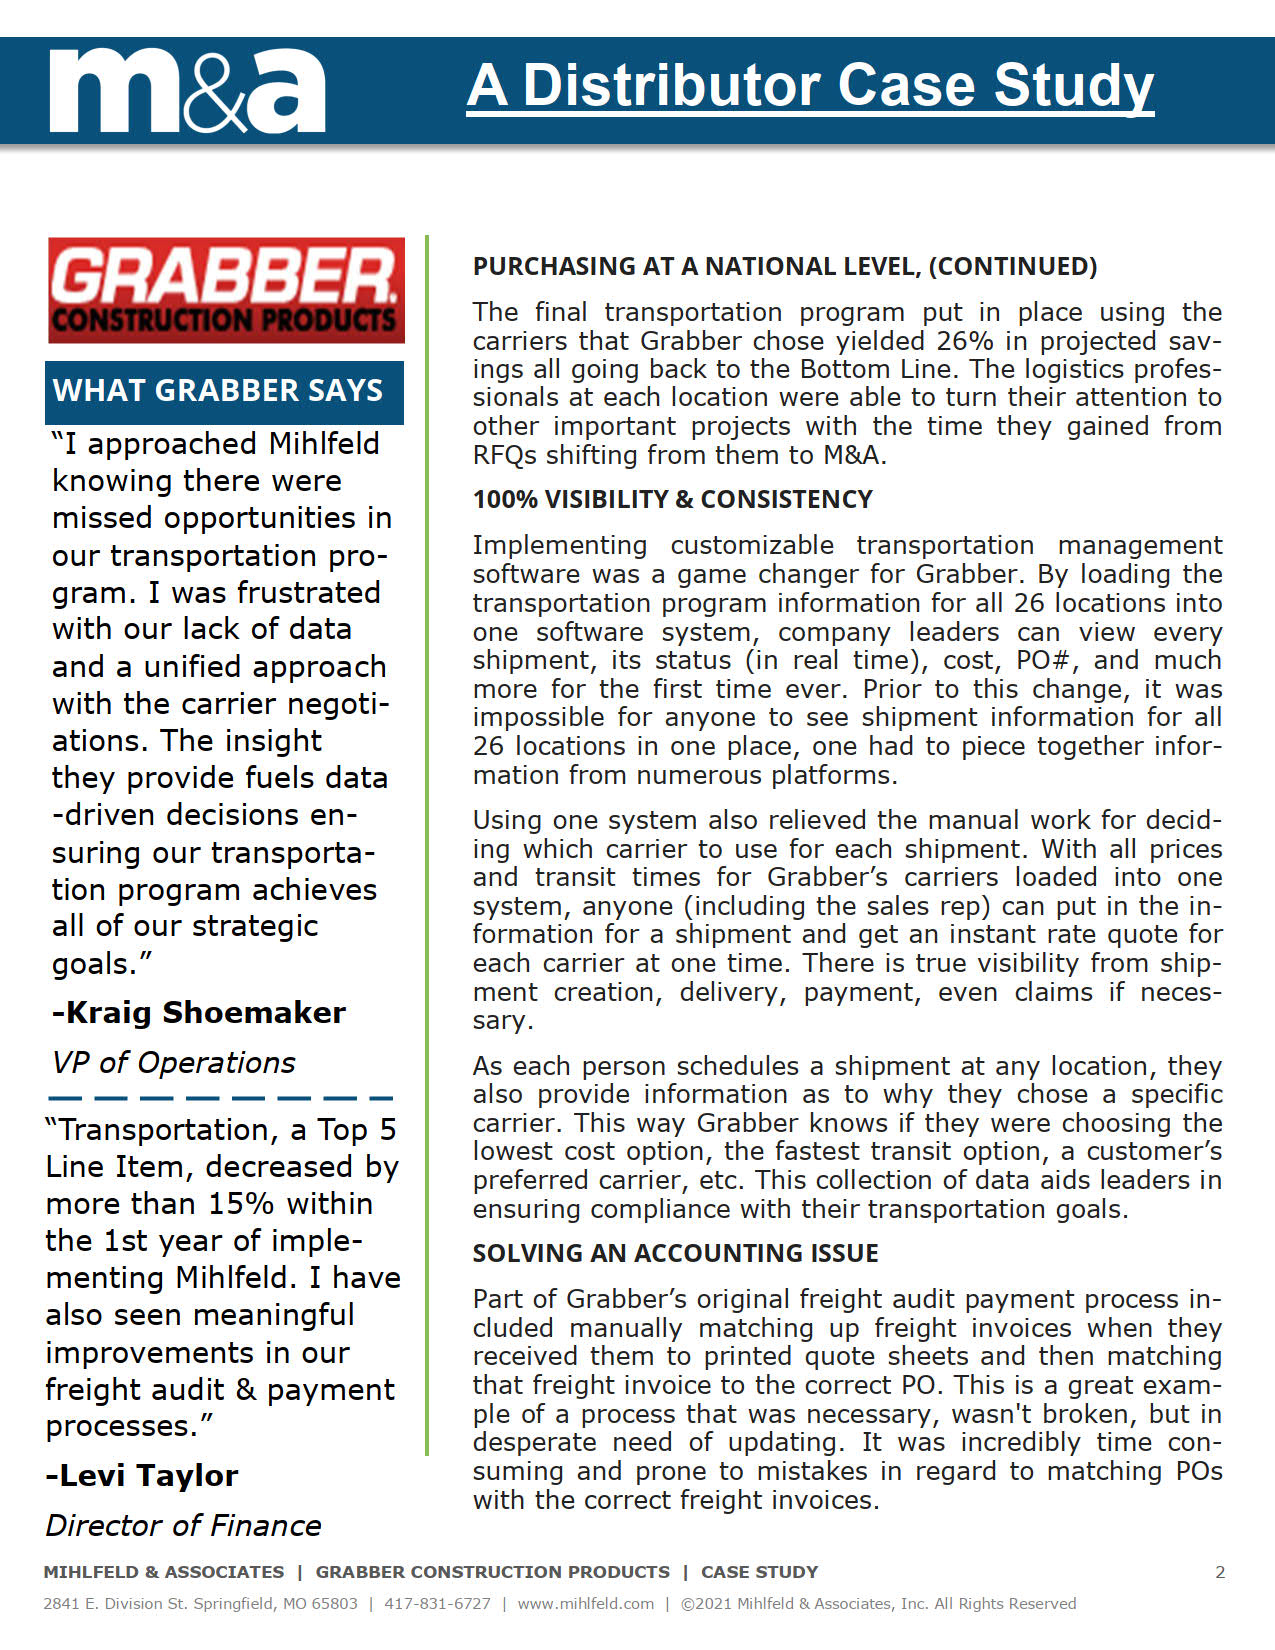 GRBB Case study Picture 2